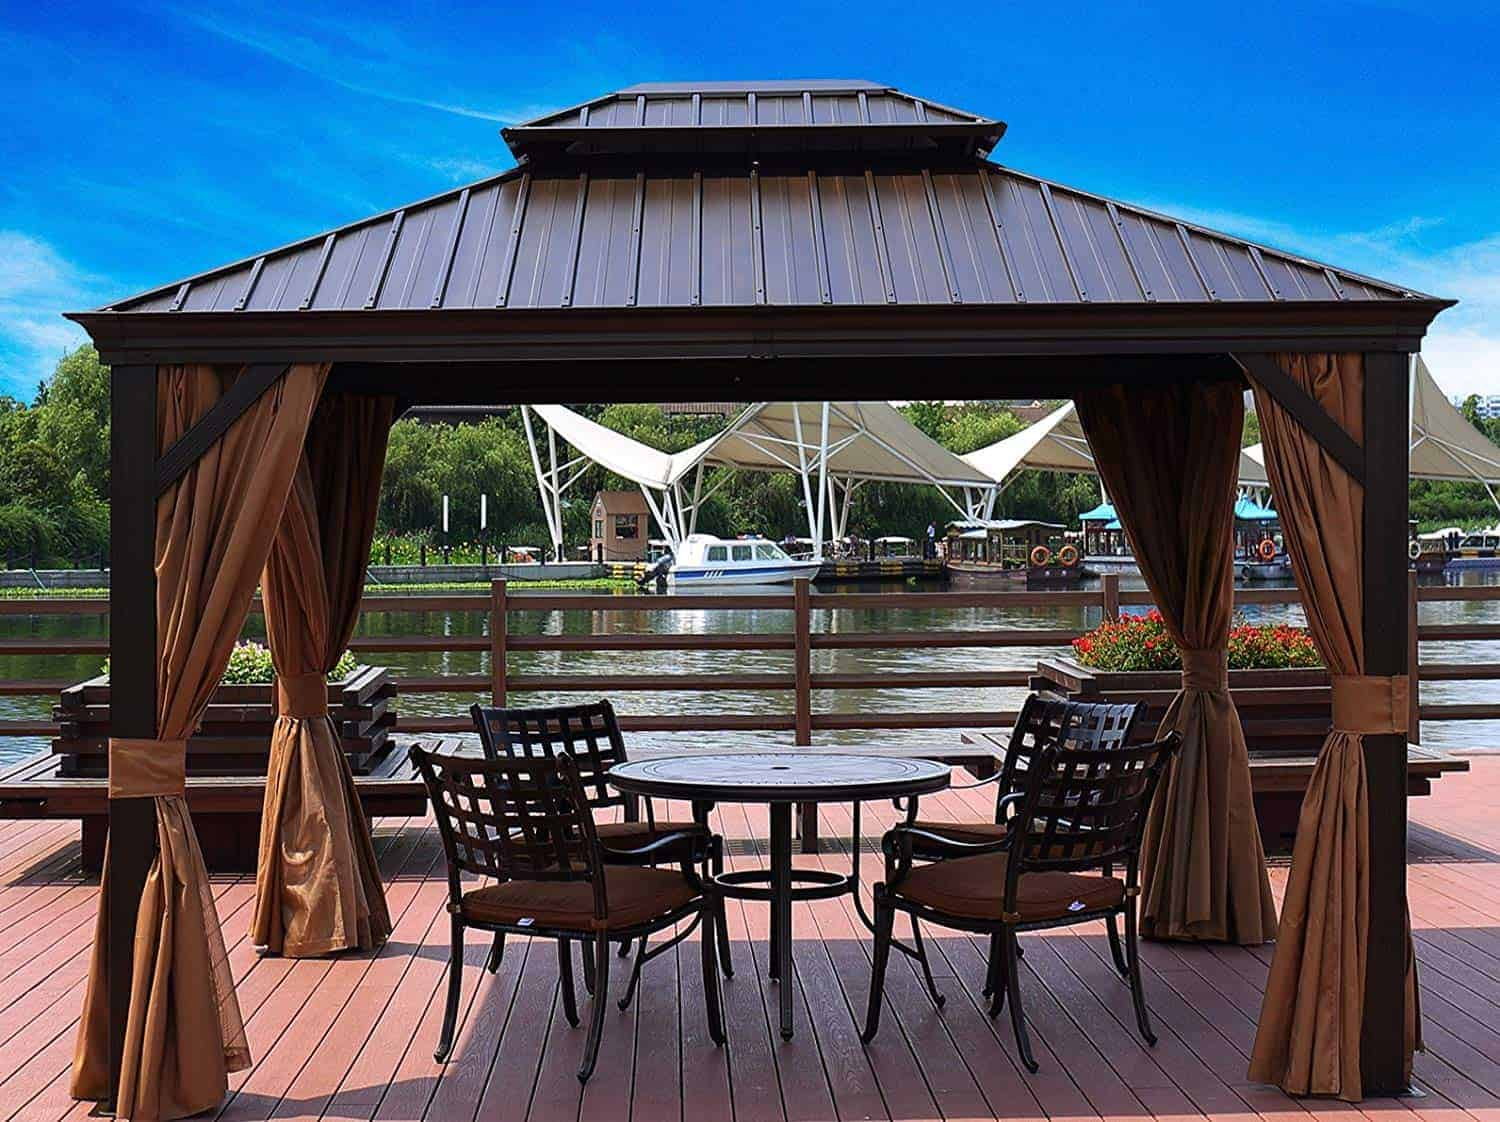 Best Gazebo for Windy Areas/High Winds-Our Reviews! - Your Yard Guru